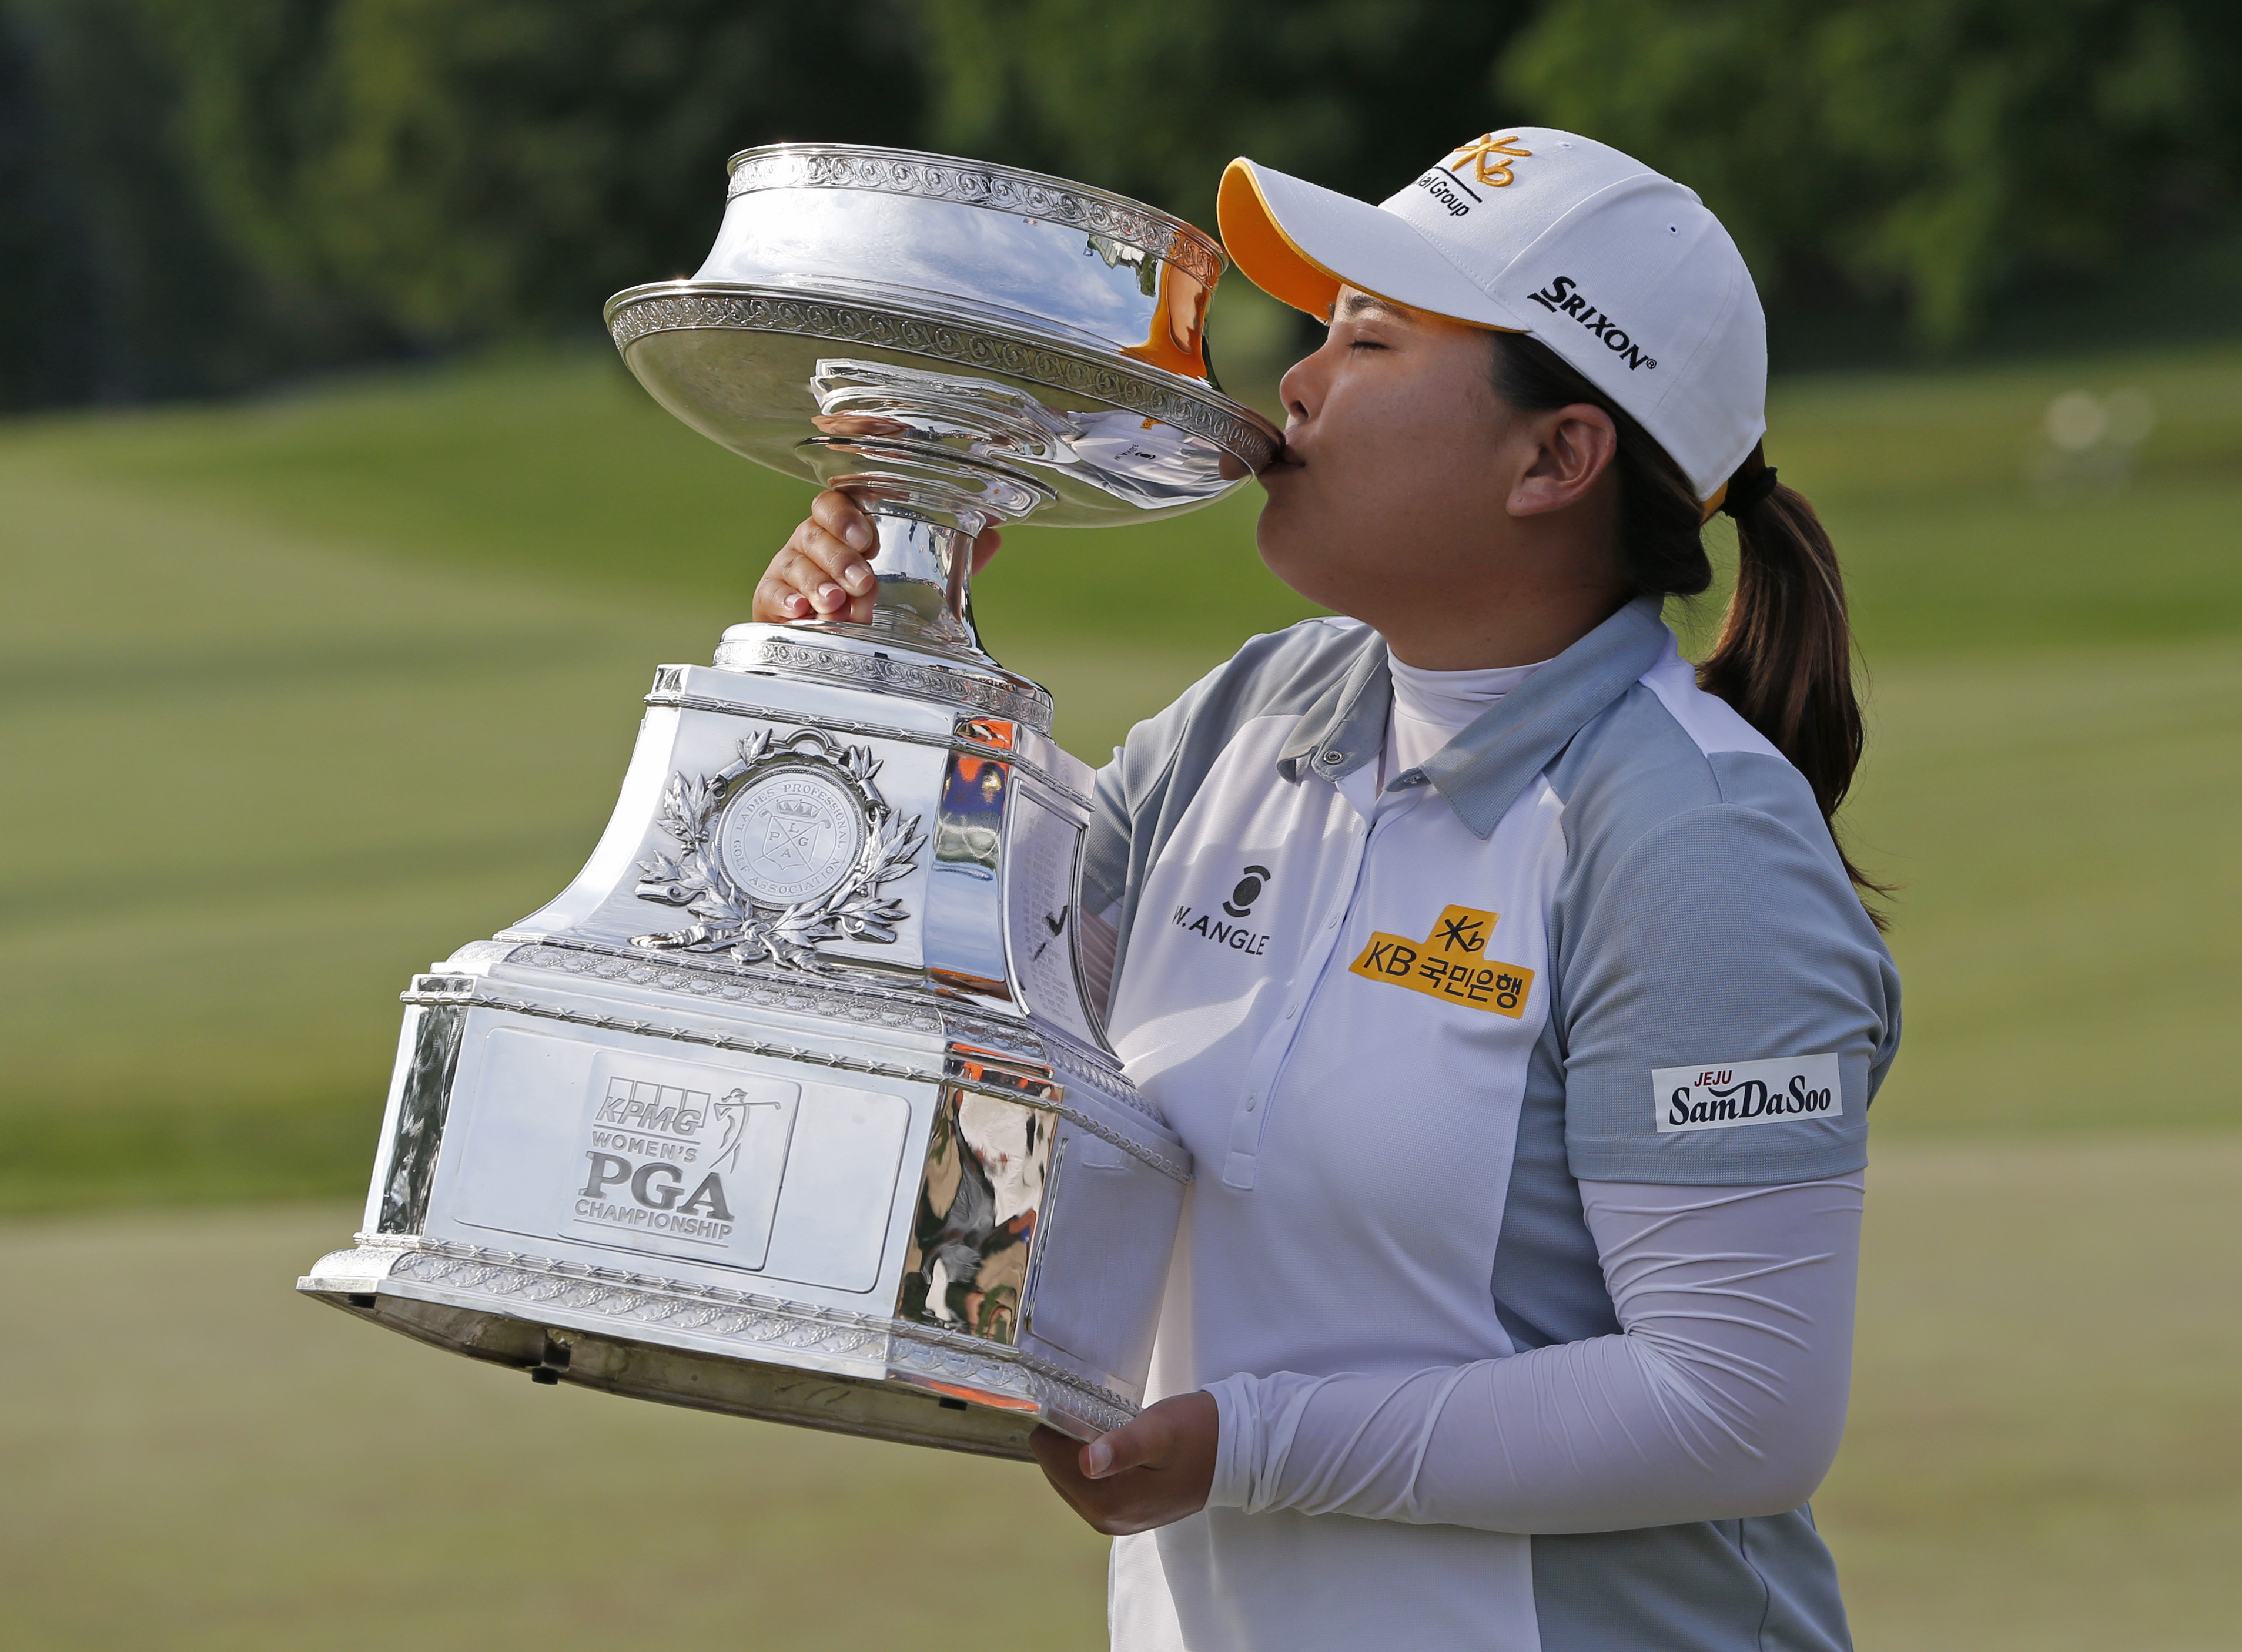 Inbee Park, of South Korea, kisses the trophy after winning the KPMG Women's PGA golf championship at Westchester Country Club in Harrison, N.Y., Sunday, June 14, 2015. (AP Photo/Julio Cortez)